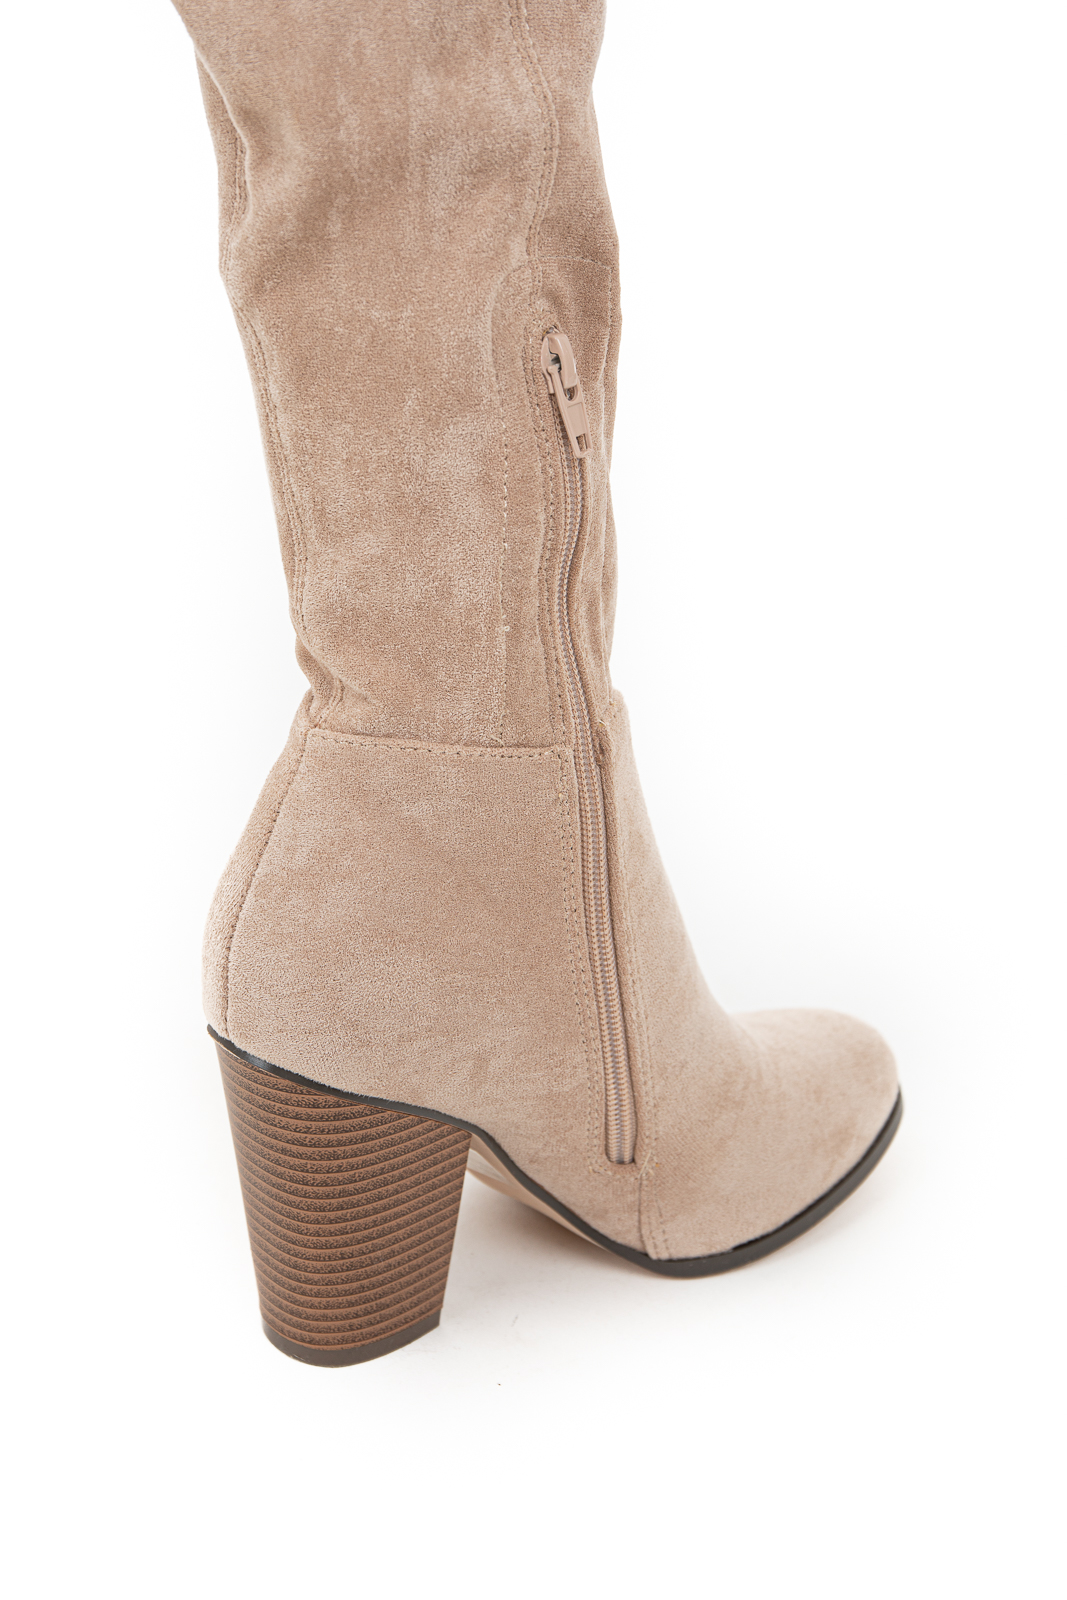 Beige Knee High Boots with Side Zipper and Chunky Heel